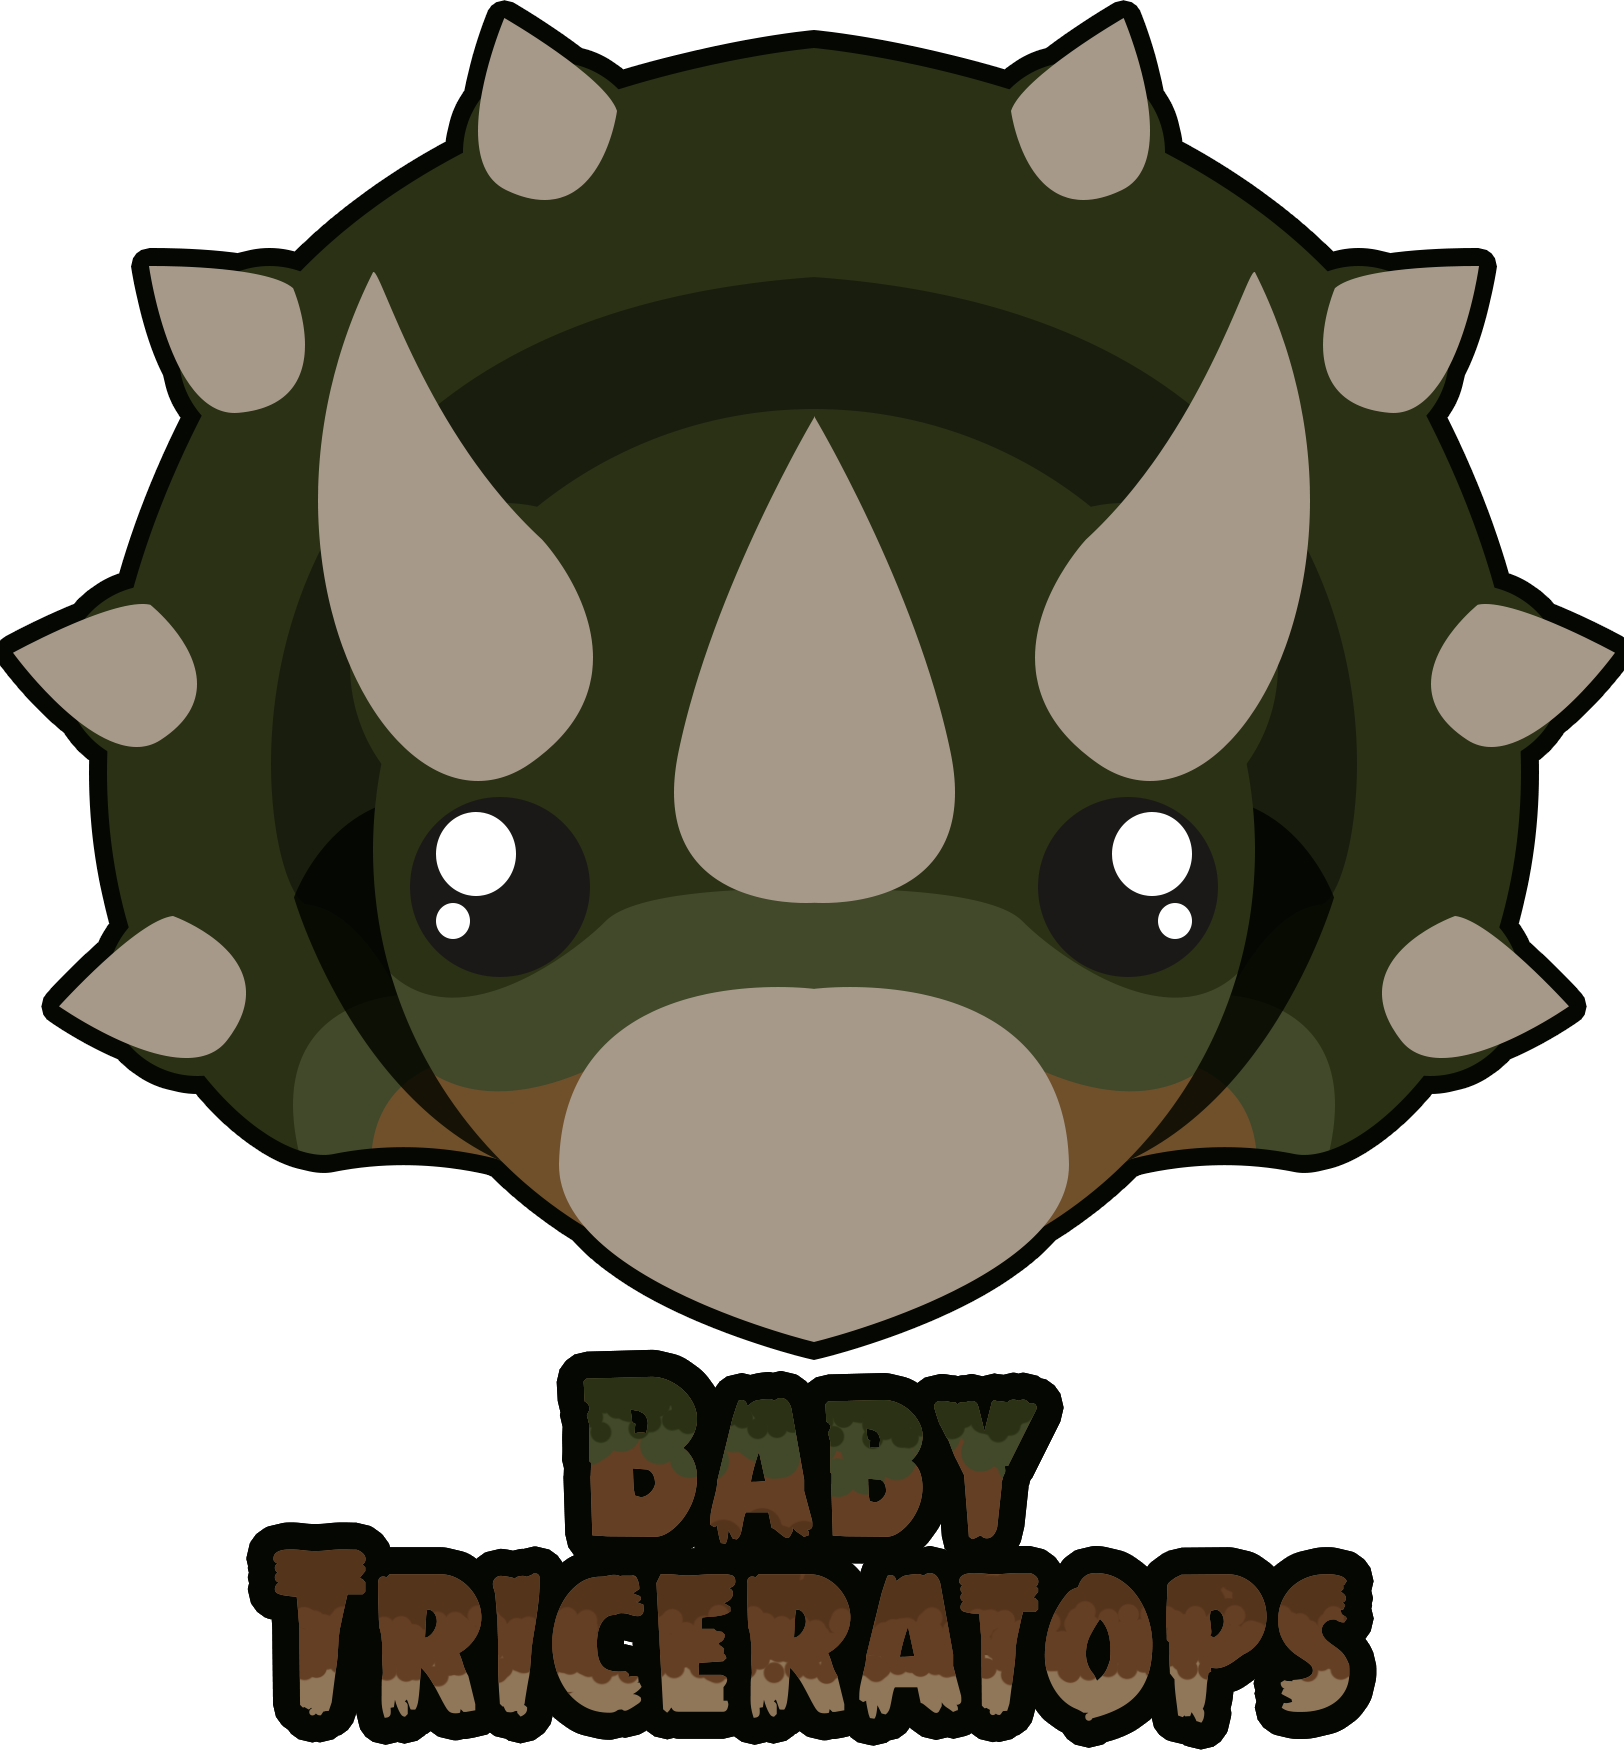 Baby triceratops mod by. Fist clipart ally